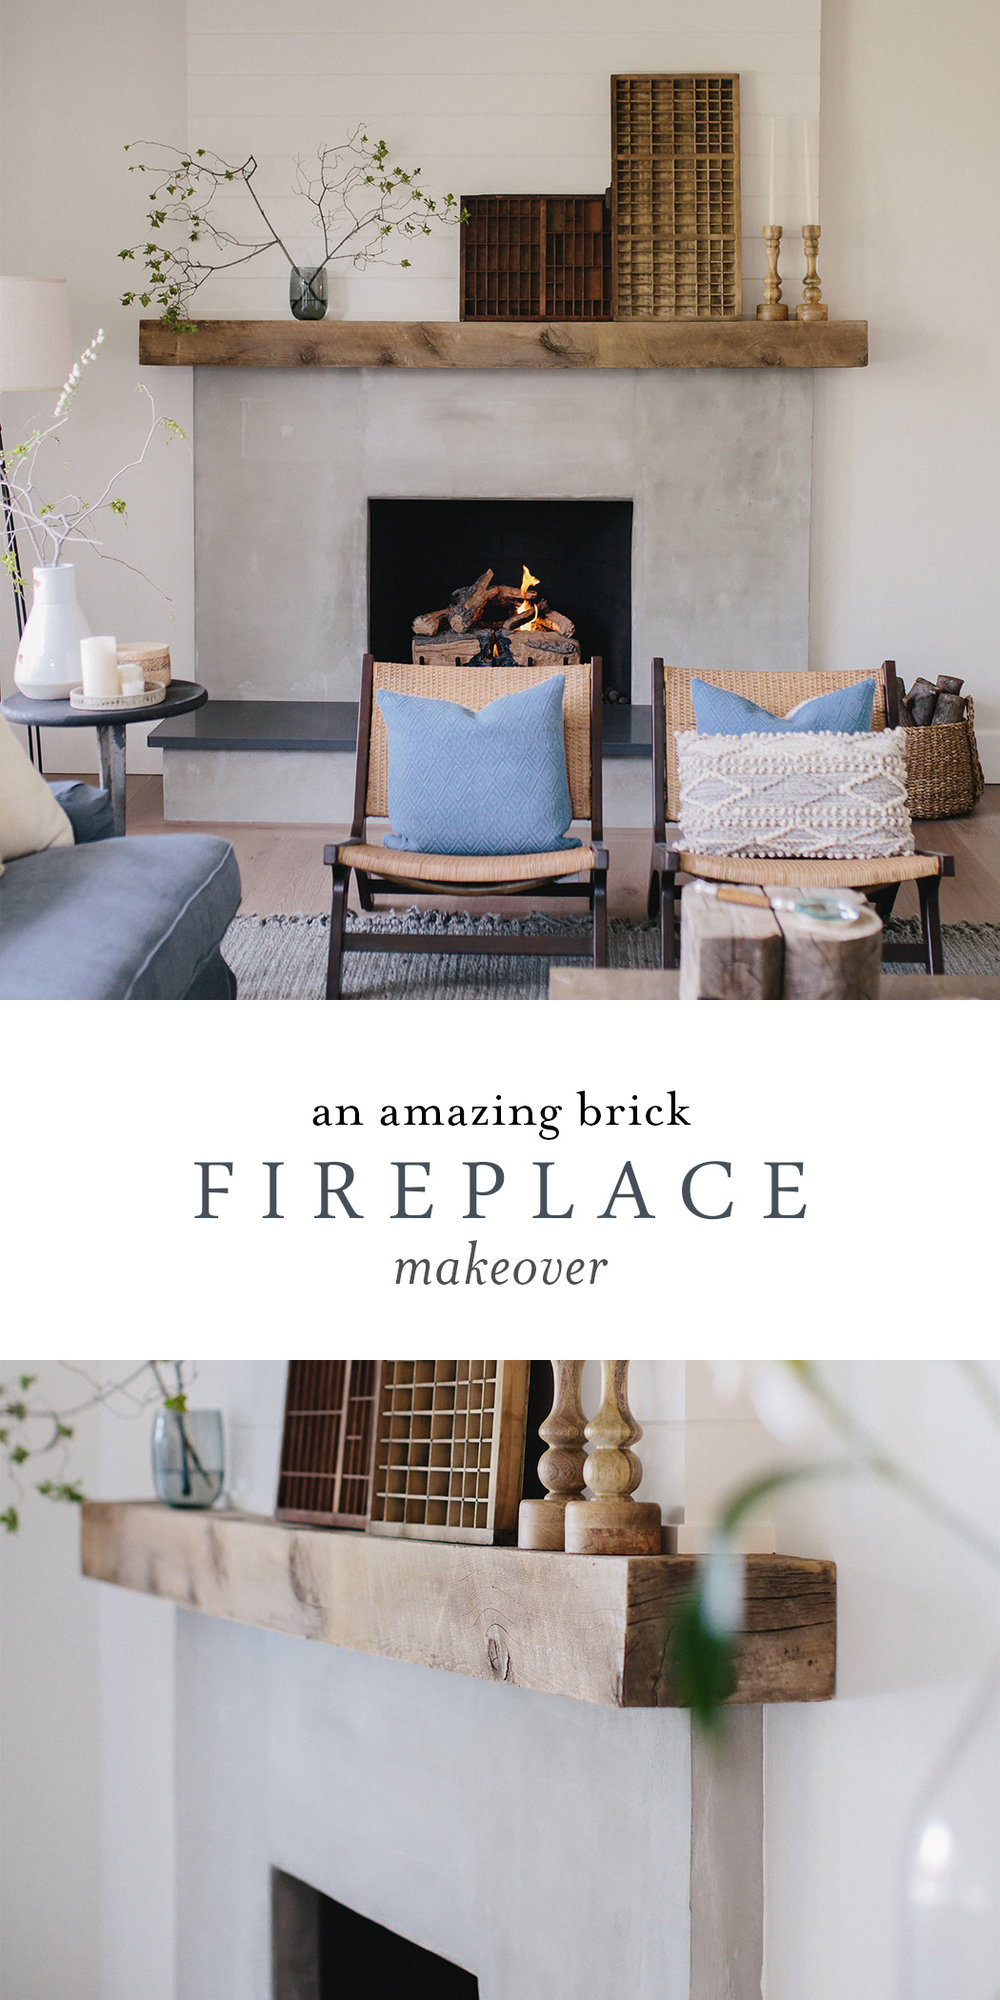 A beautiful brick fireplace makeover using cement. This contemporary fireplace is the perfect way to update a brick fireplace! Reno, Nevada interior design and remodel boxwoodavenue.com #fireplacemakeover #fireplaceupdate #brickfireplace